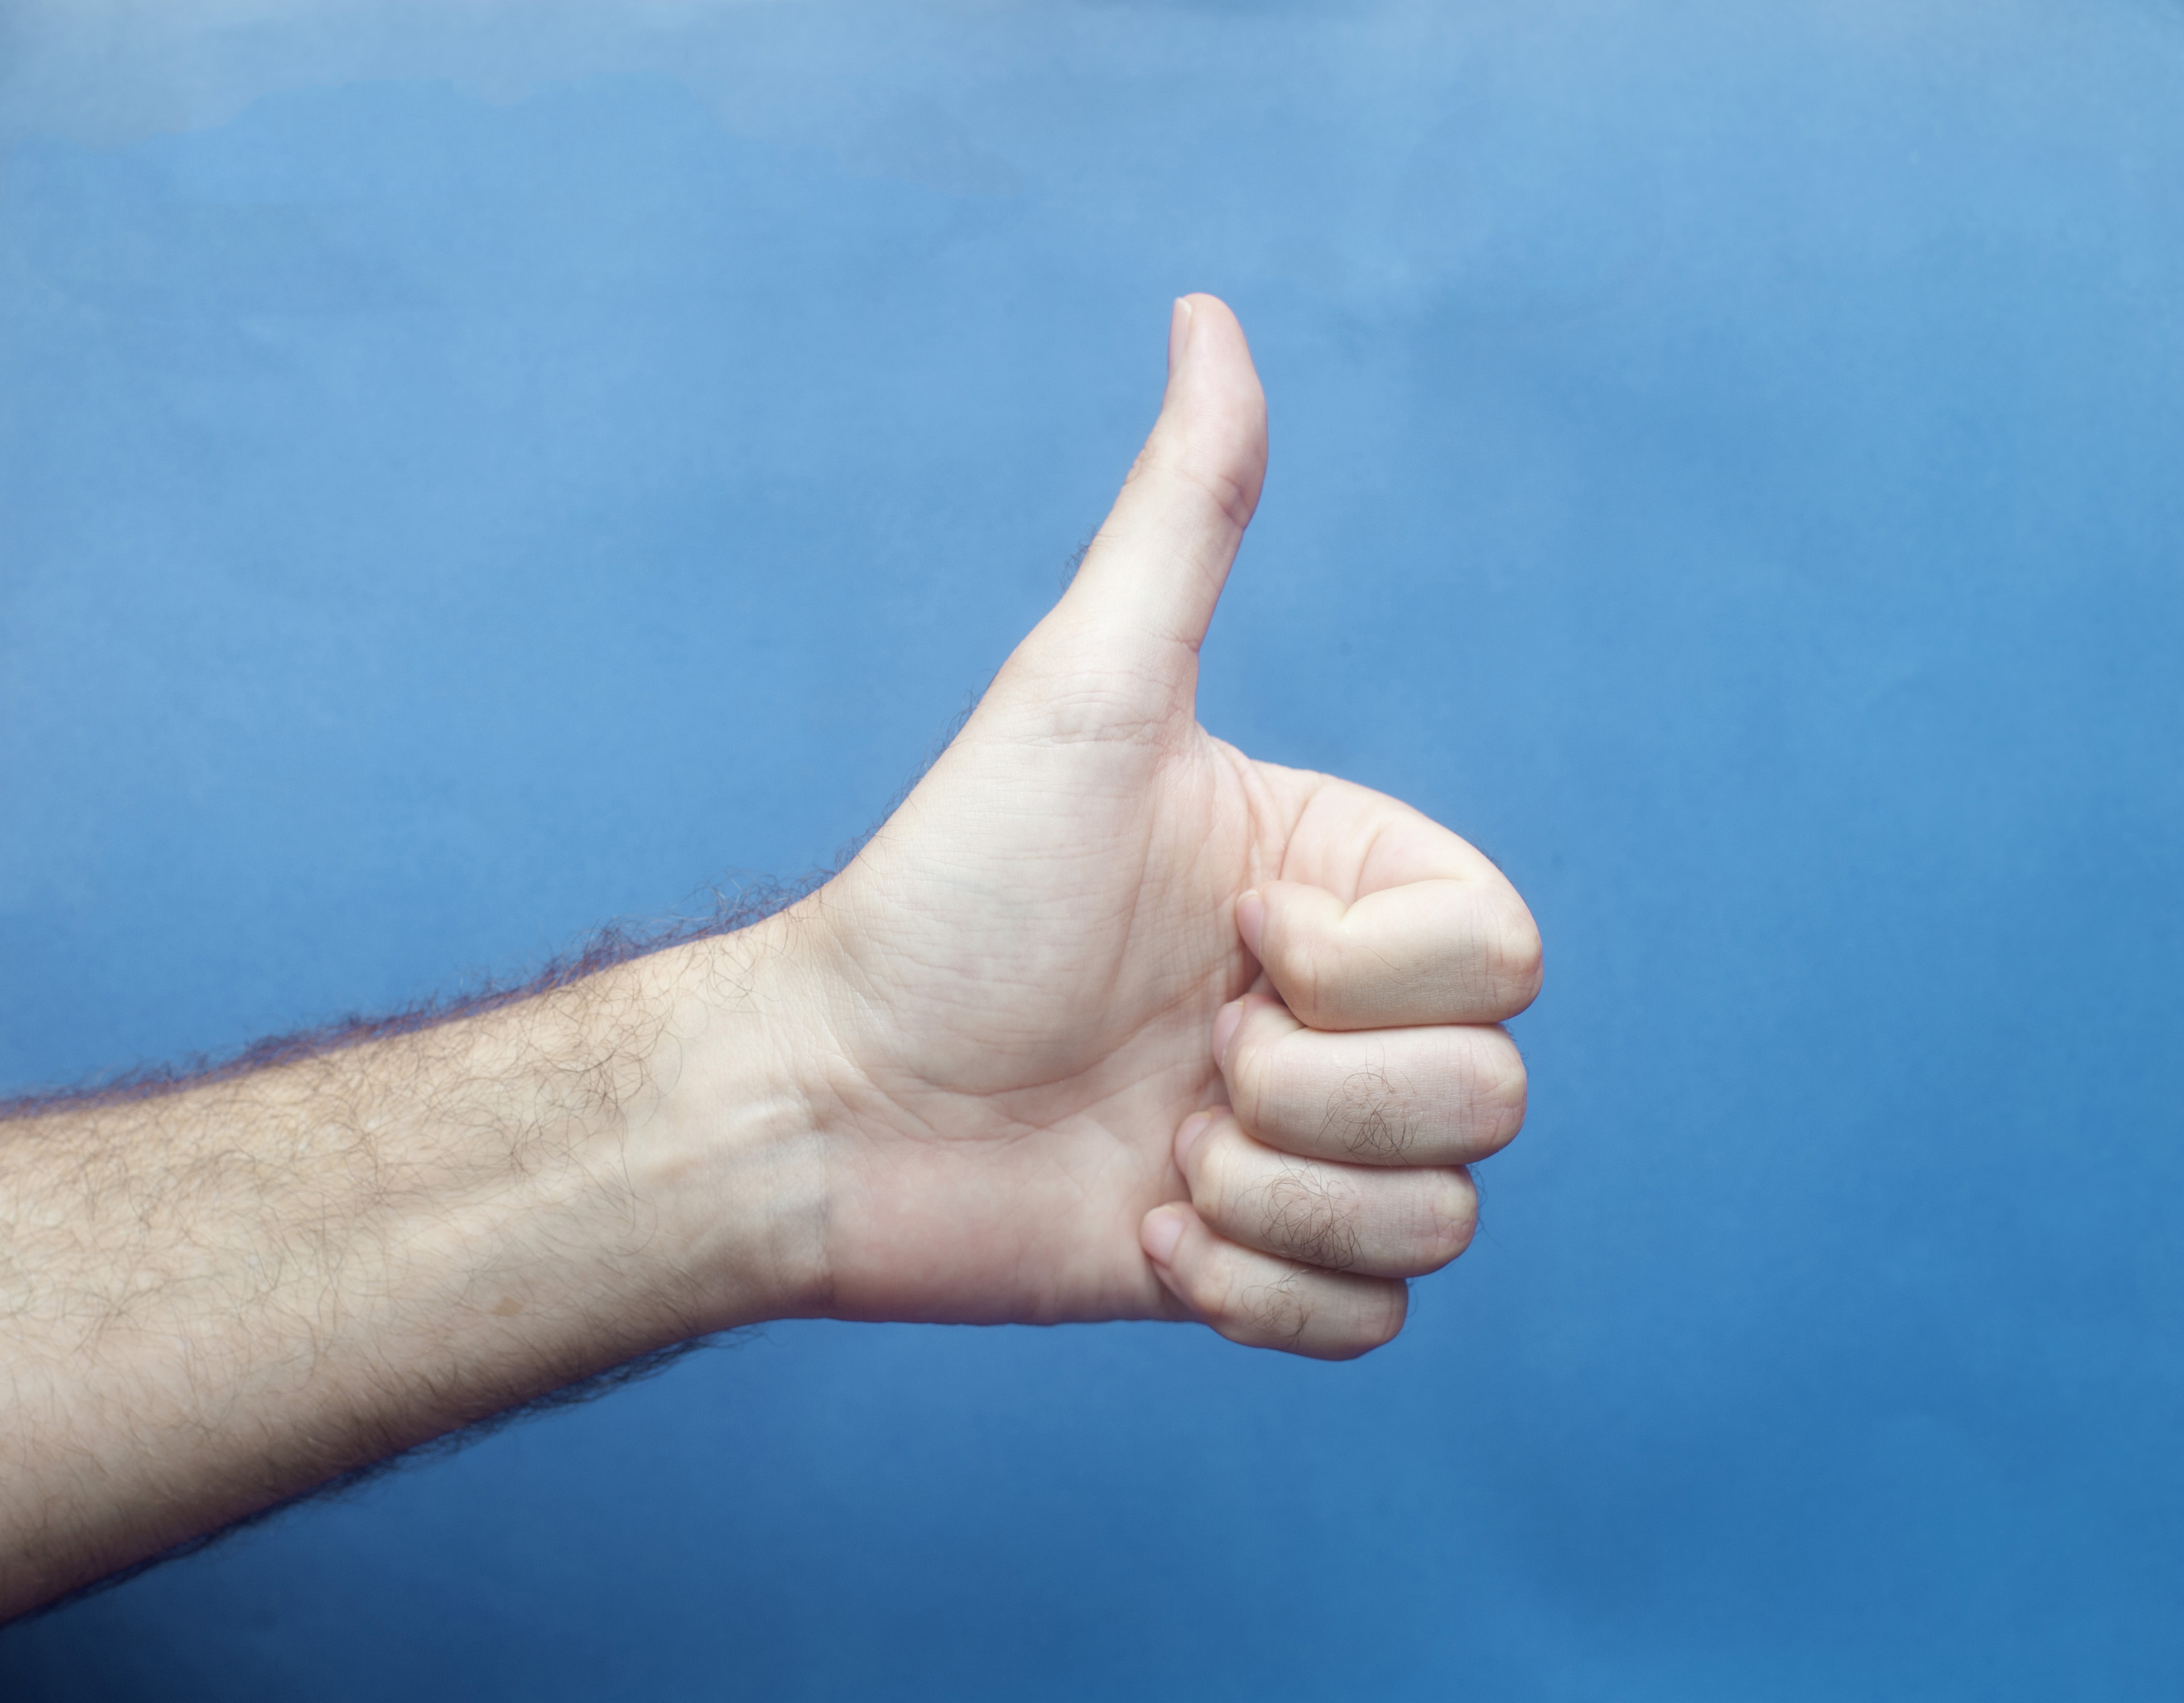 I like this - Male Hand Giving Thumbs Up Sign Giving Approval with Blue Background